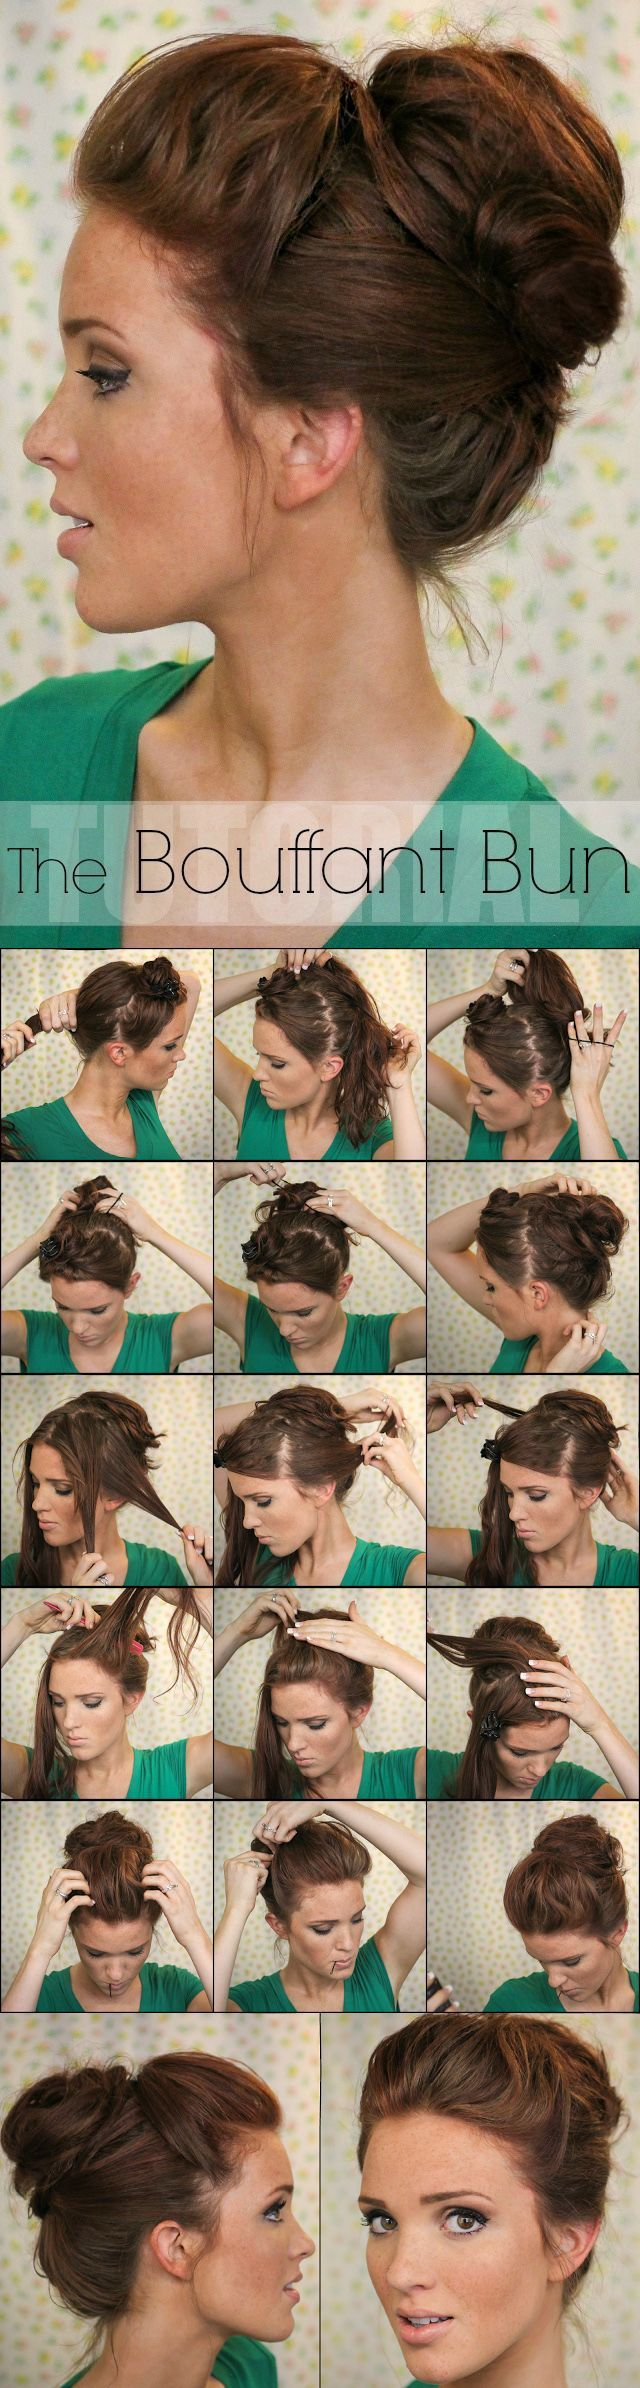 The Bouffant Bun | Best Hairstyle for Dirty Hair